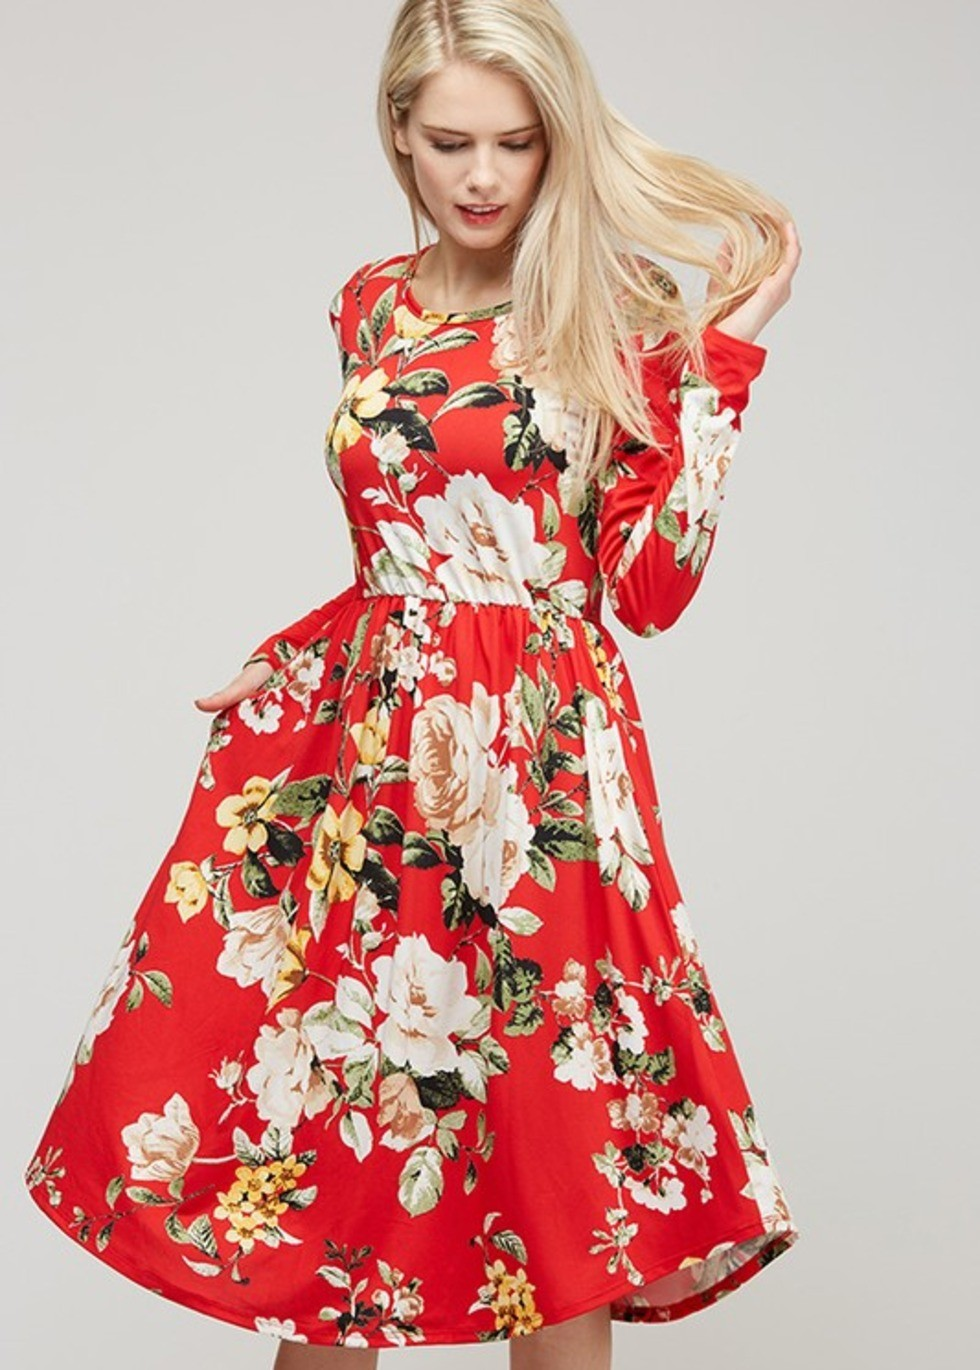 adeline floral dress - red ... BQSPWTM